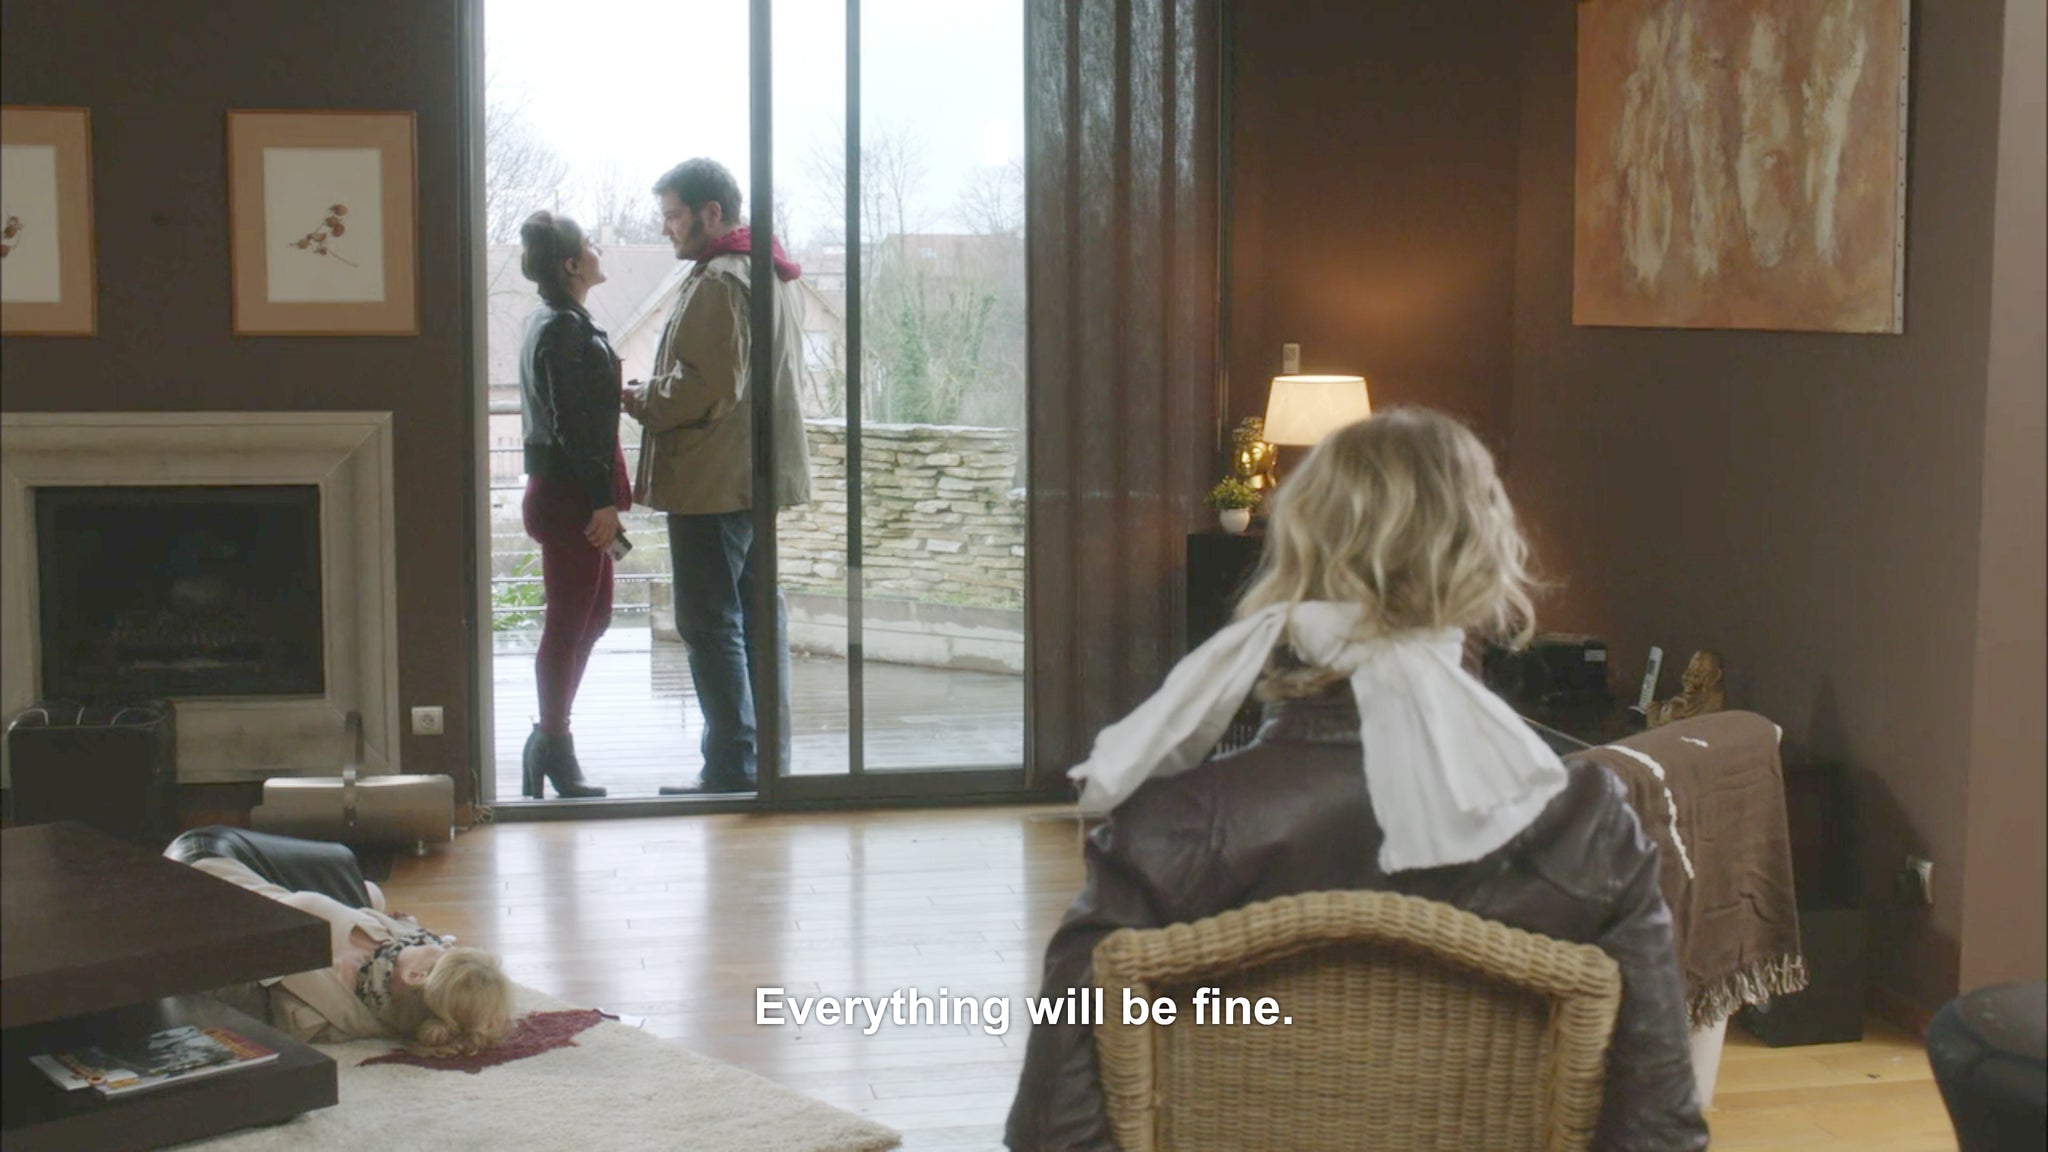 Allan McCollum: An Ongoing Collection of Screengrabs with Reassuring Subtitles -ok673